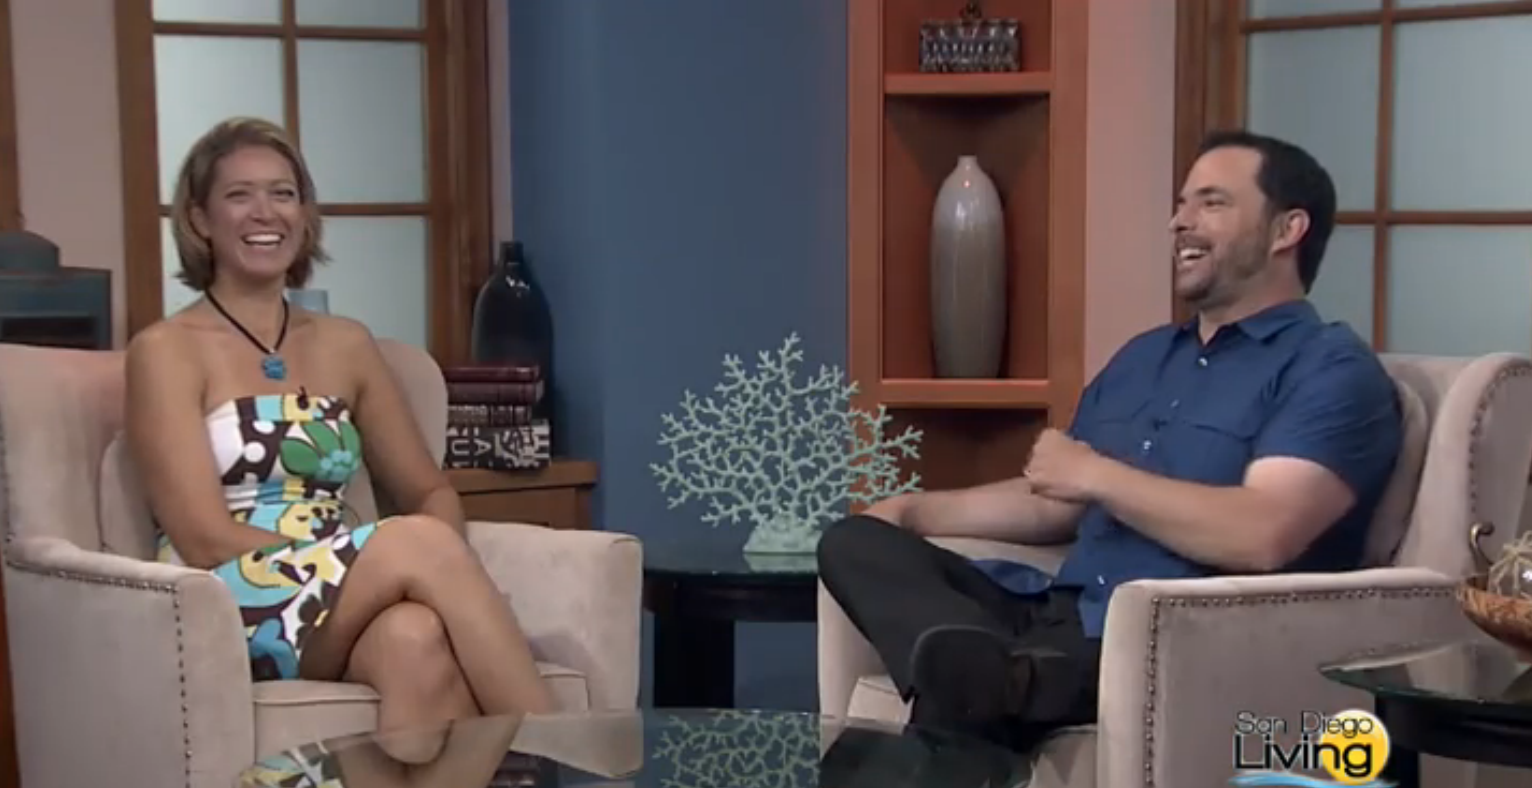 San Diego sexologist Dr. Jenn Gunsaullus discusses our sexual turn-ons and turn-offs.